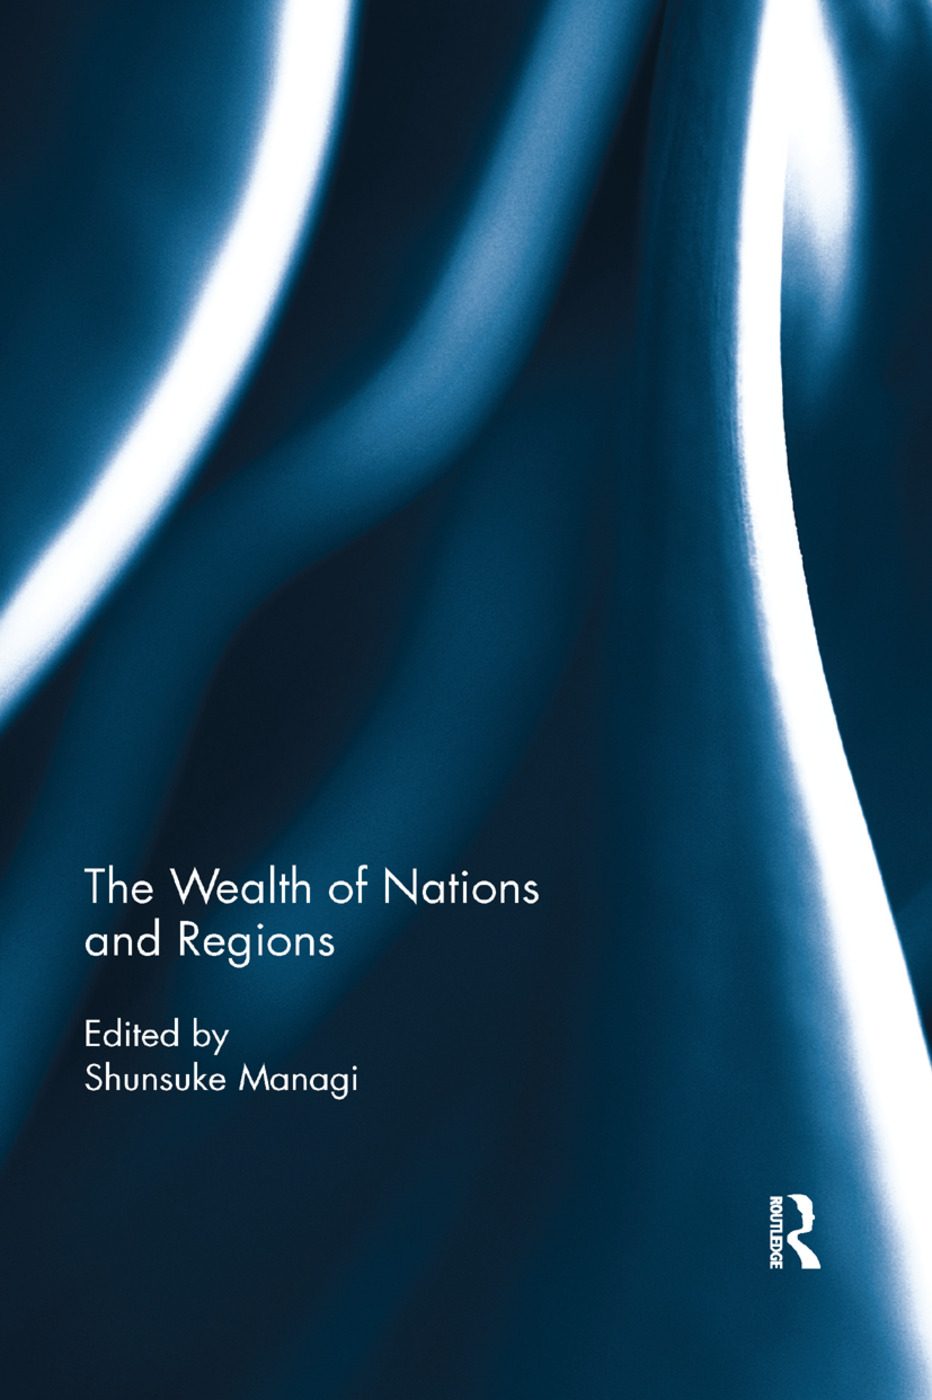 The Wealth of Nations and Regions